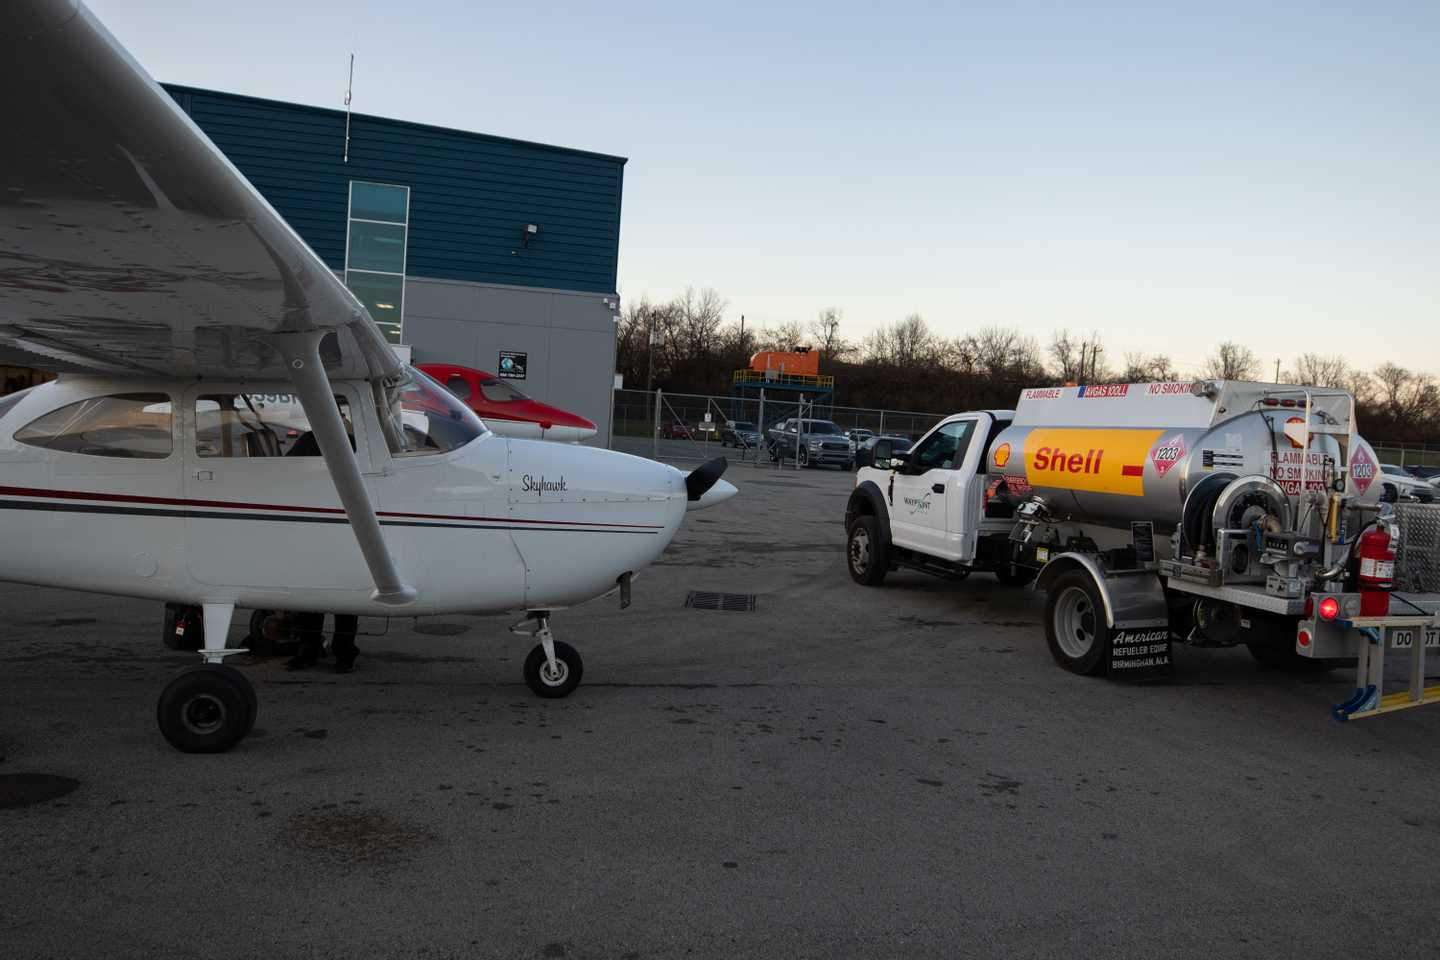 An aircraft parked on the airport ramp being fueled.